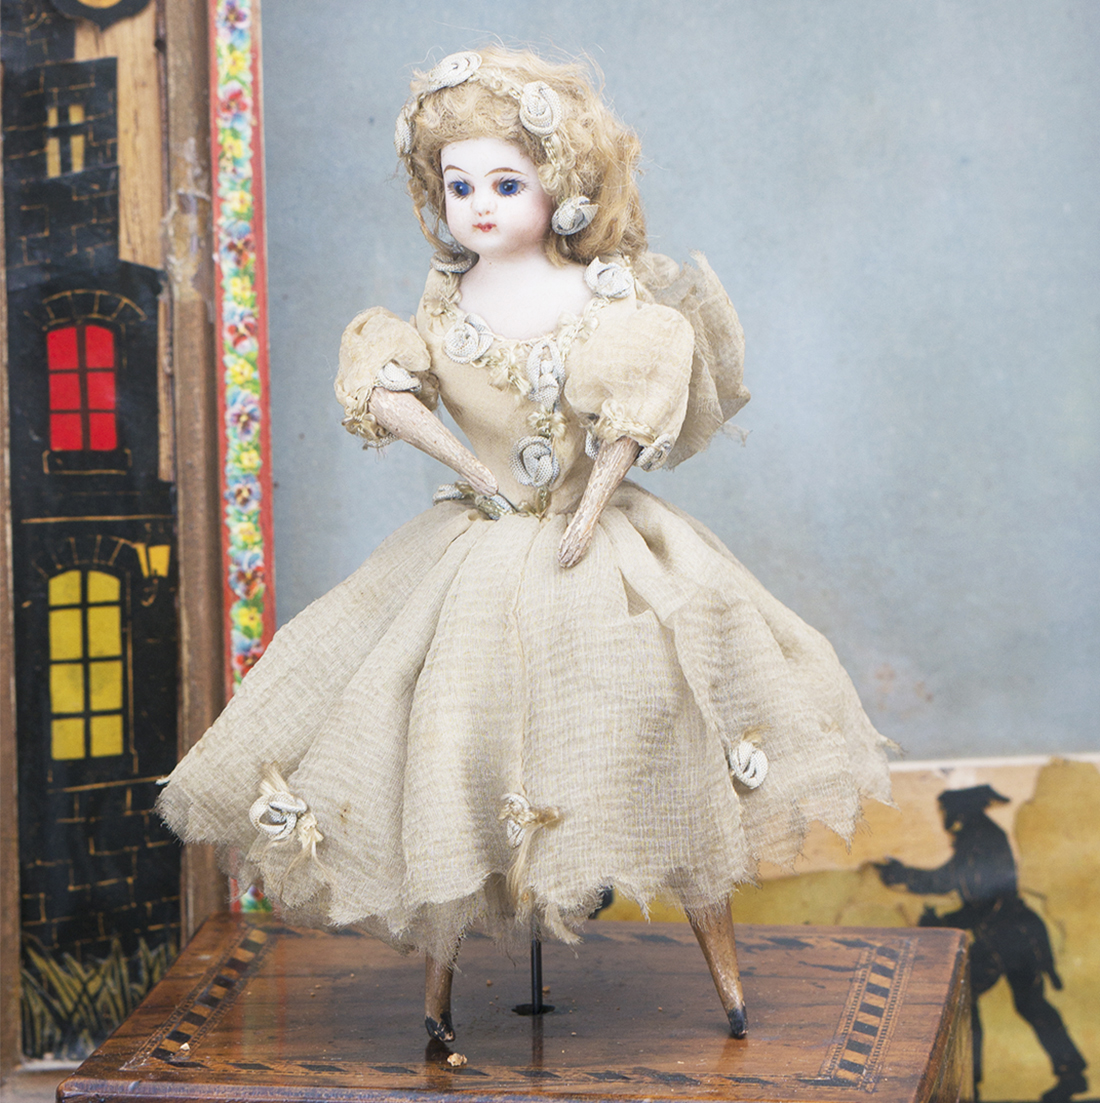 MECHANICAL DANCING DOLL